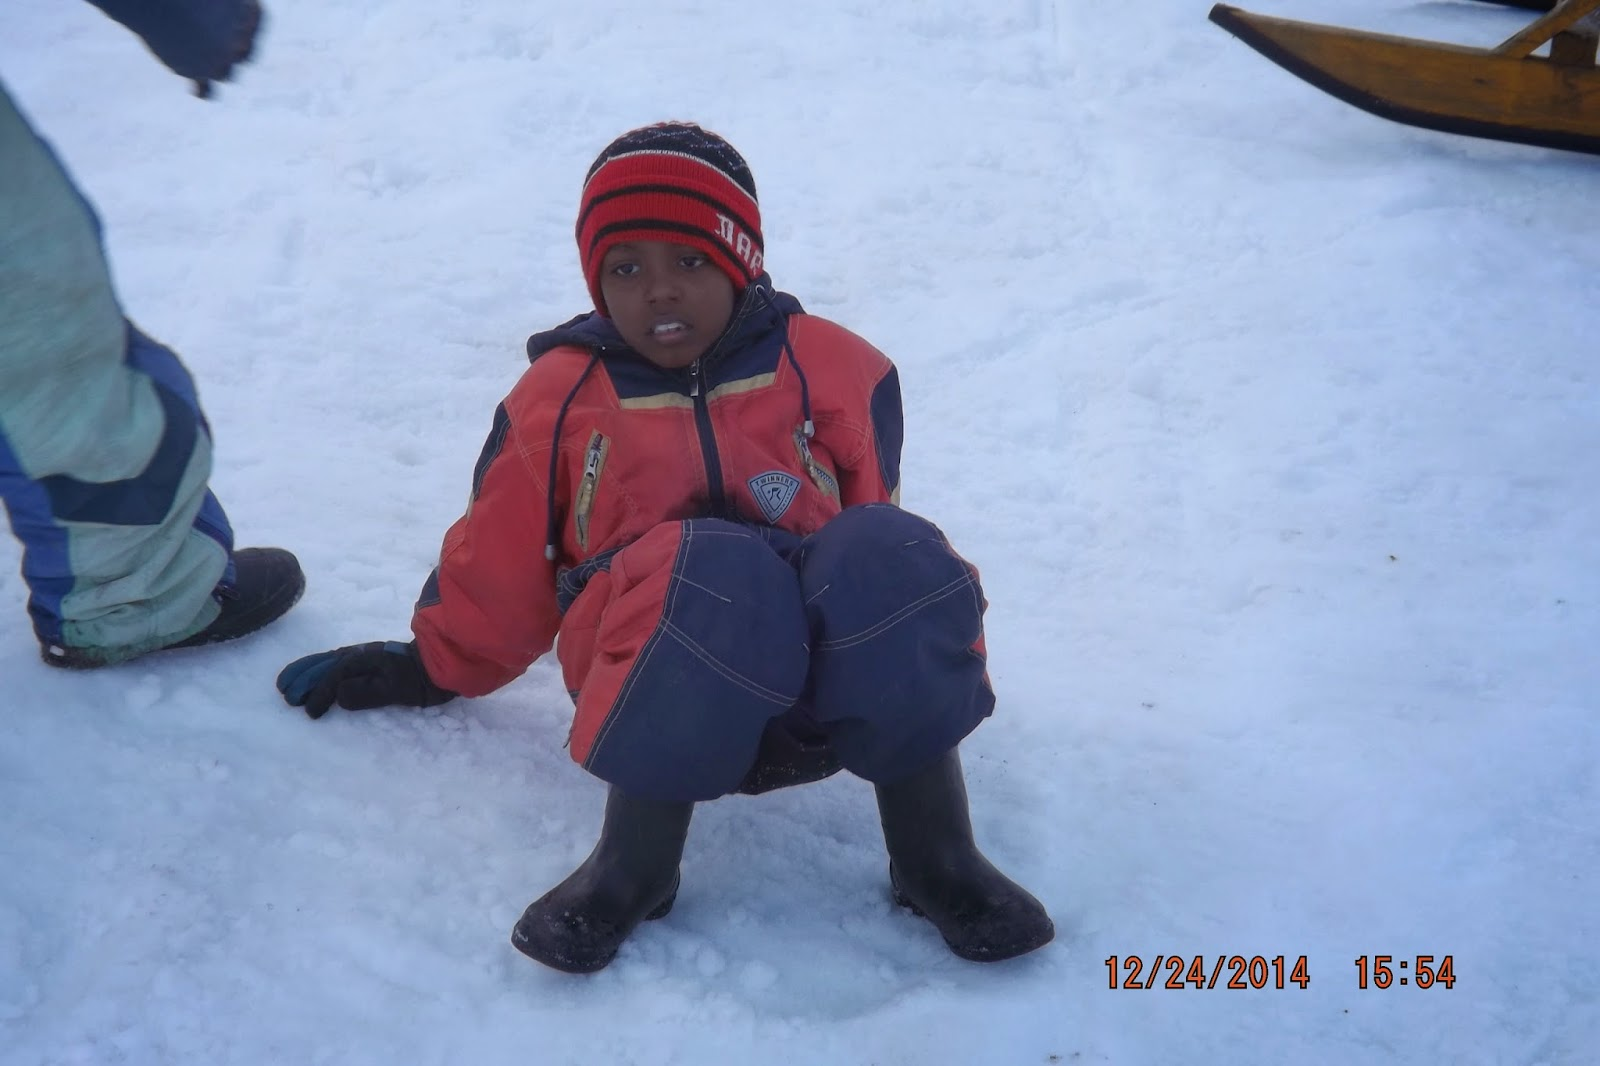 Chandradittya Banik enjoying the snow